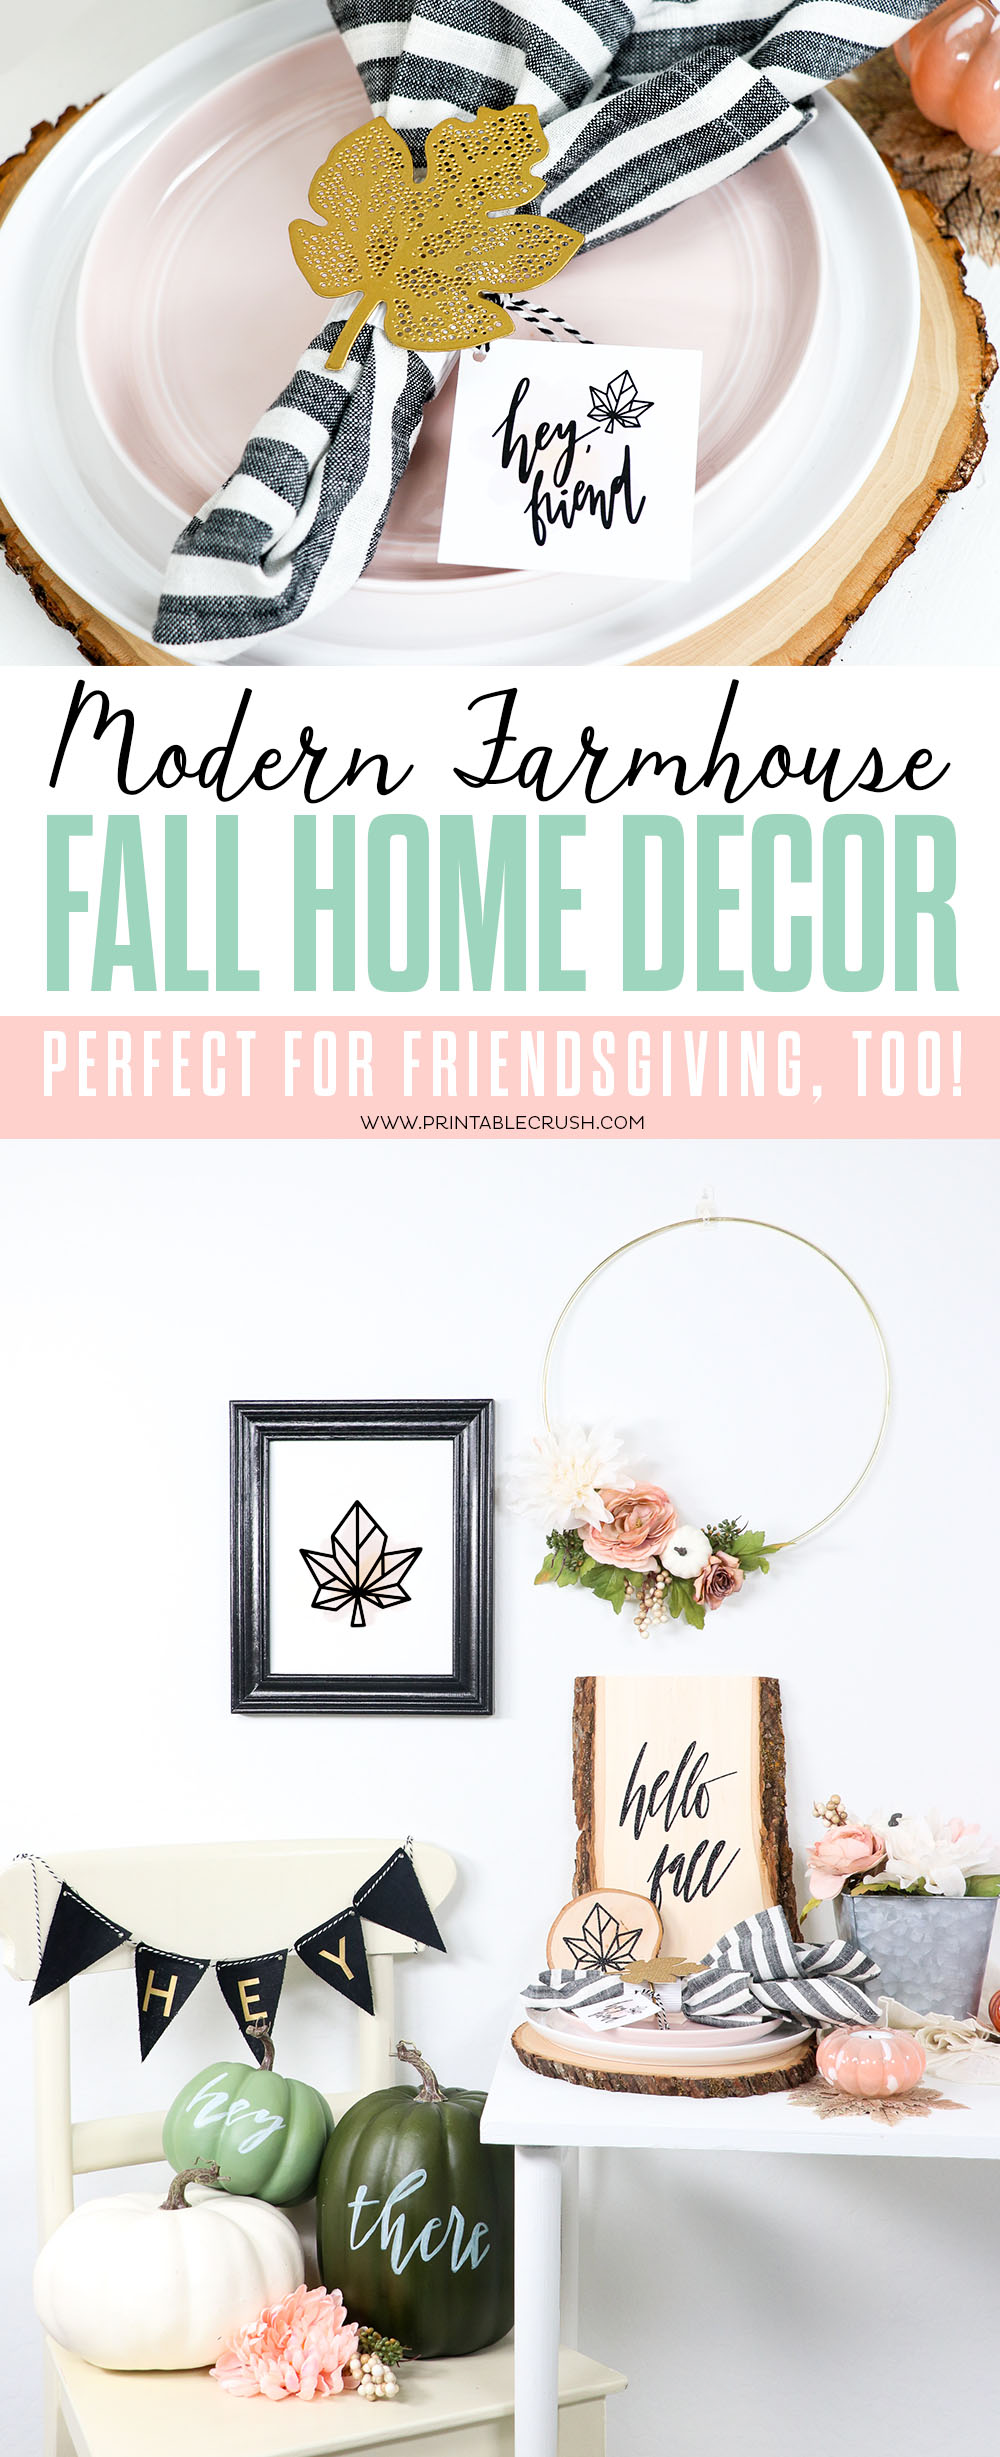 Decorate your home with these Beautiful and Modern Farmhouse Fall Home Decor Ideas. Perfect for Friendsgiving too!